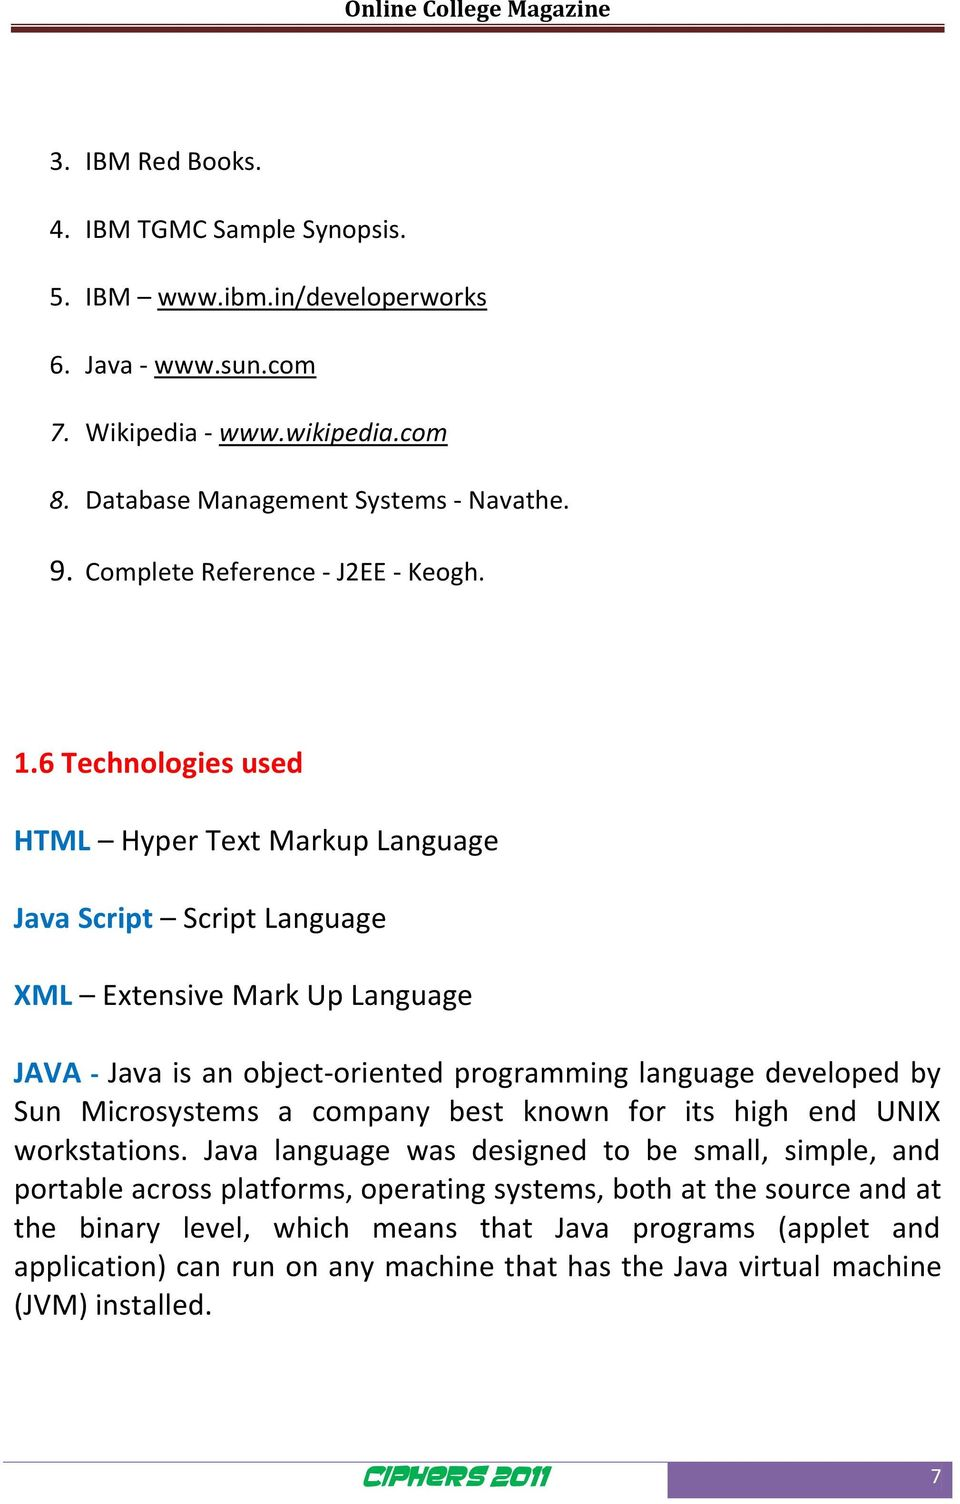 6 Technologies used HTML Hyper Text Markup Language Java Script Script Language XML Extensive Mark Up Language JAVA - Java is an object-oriented programming language developed by Sun